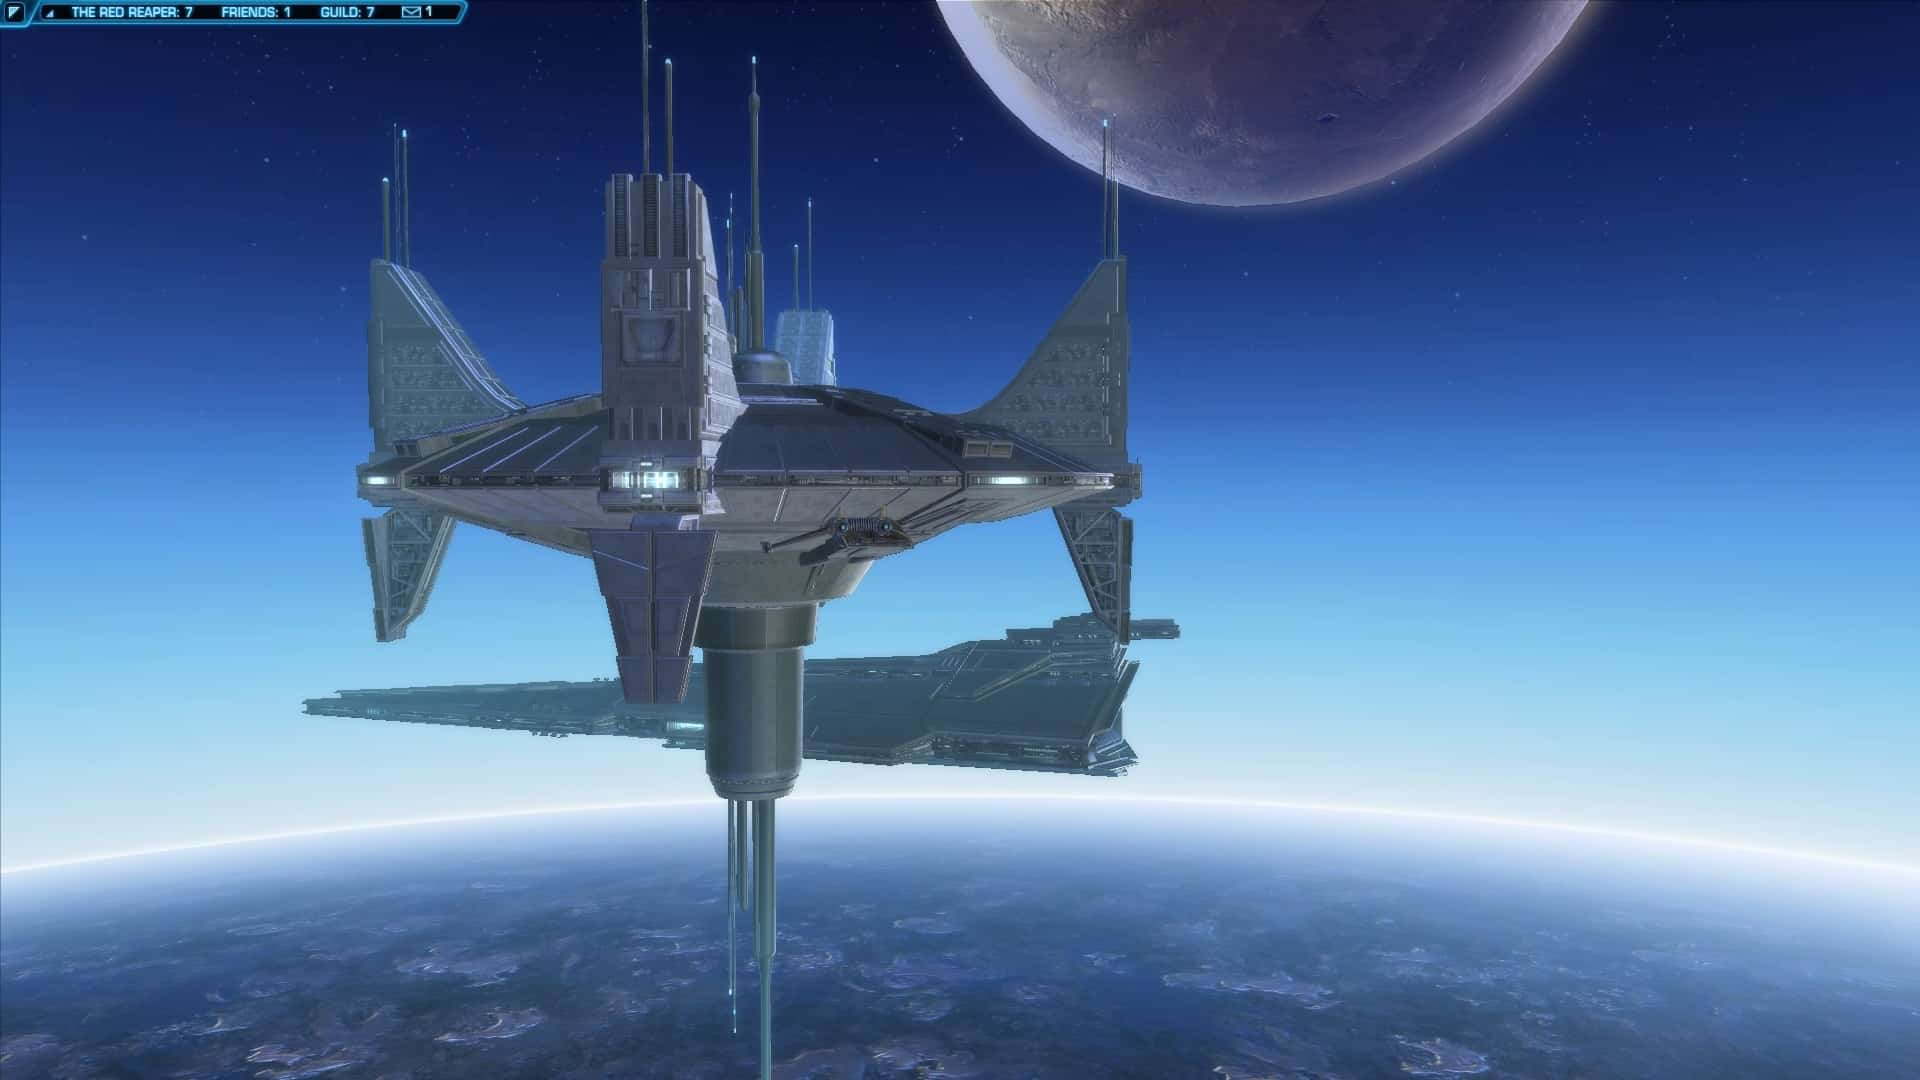 faucheur-rouge-pve-star-wars-the-old-republic-s-equiper-dans-l-extension-onslaught-swtor-guide-aide-astuce-2